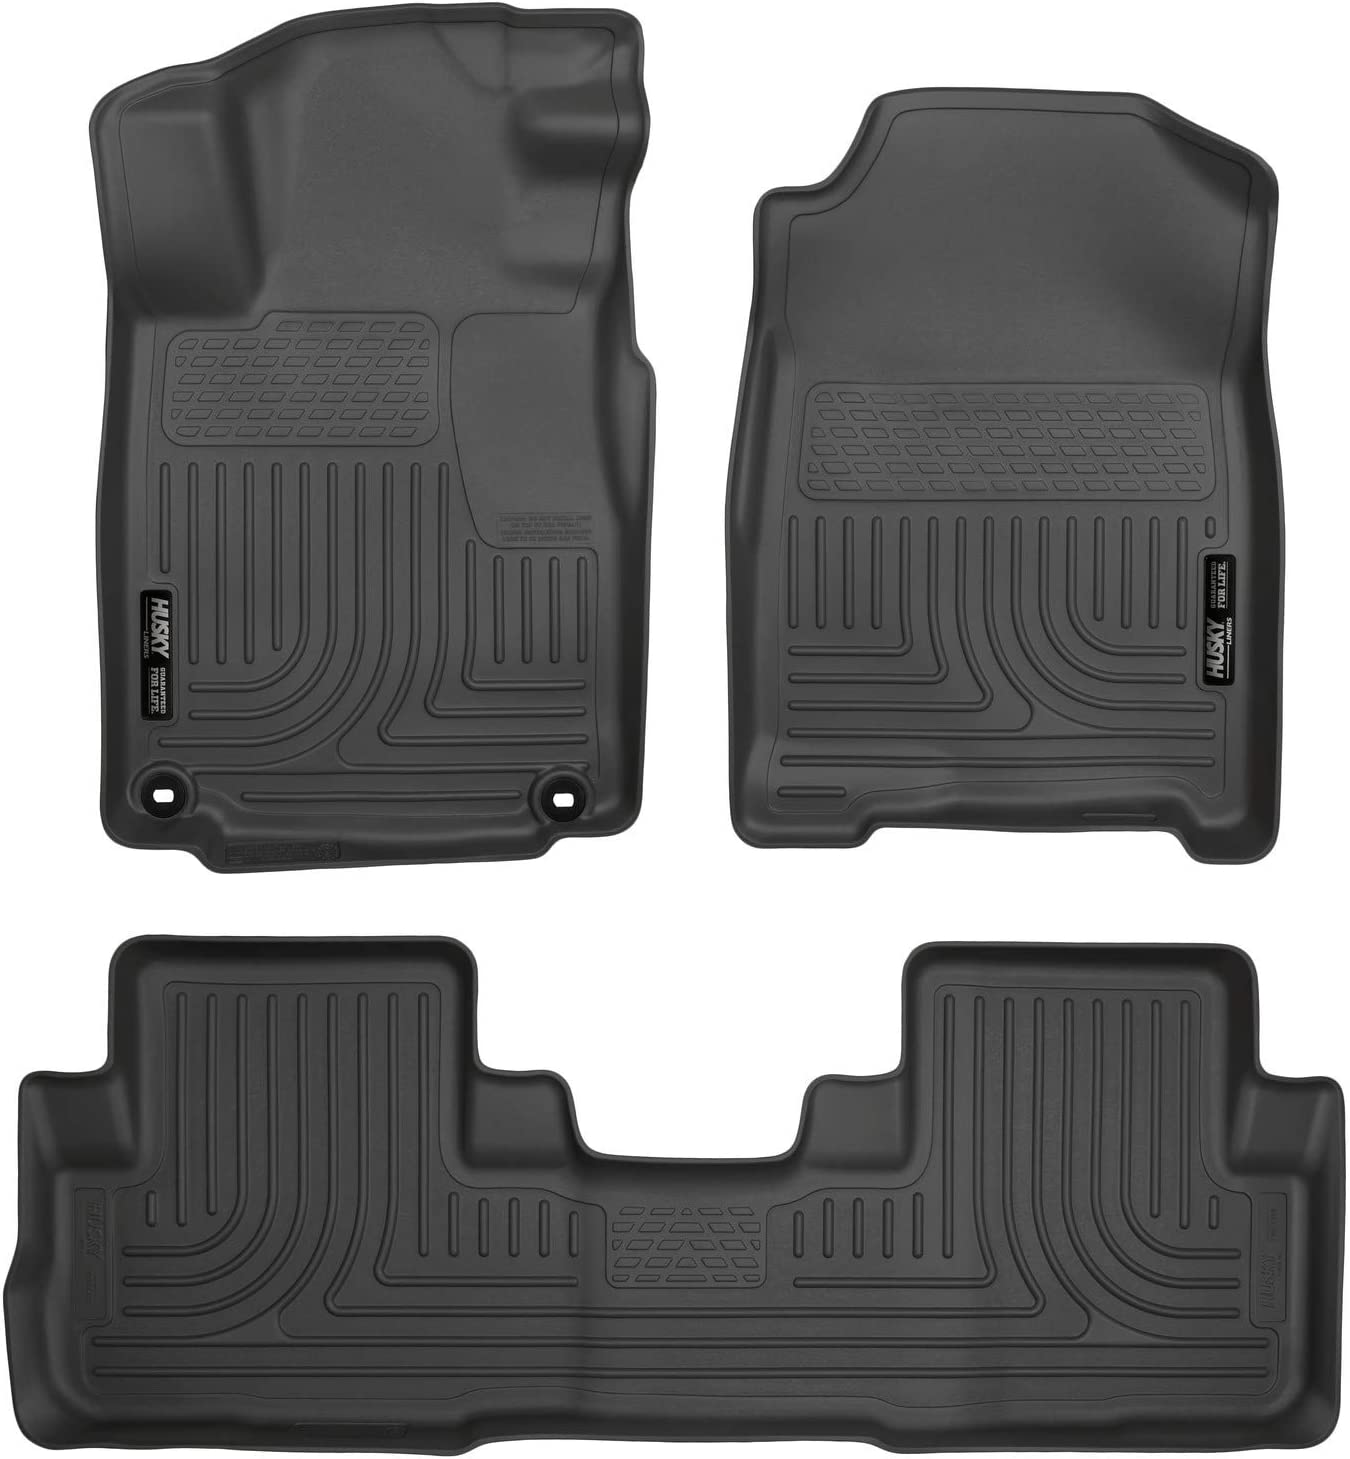 Husky Liners 98471 Fits 2016-16 Honda Weatherbeater Front Max 76% OFF CR-V Recommended